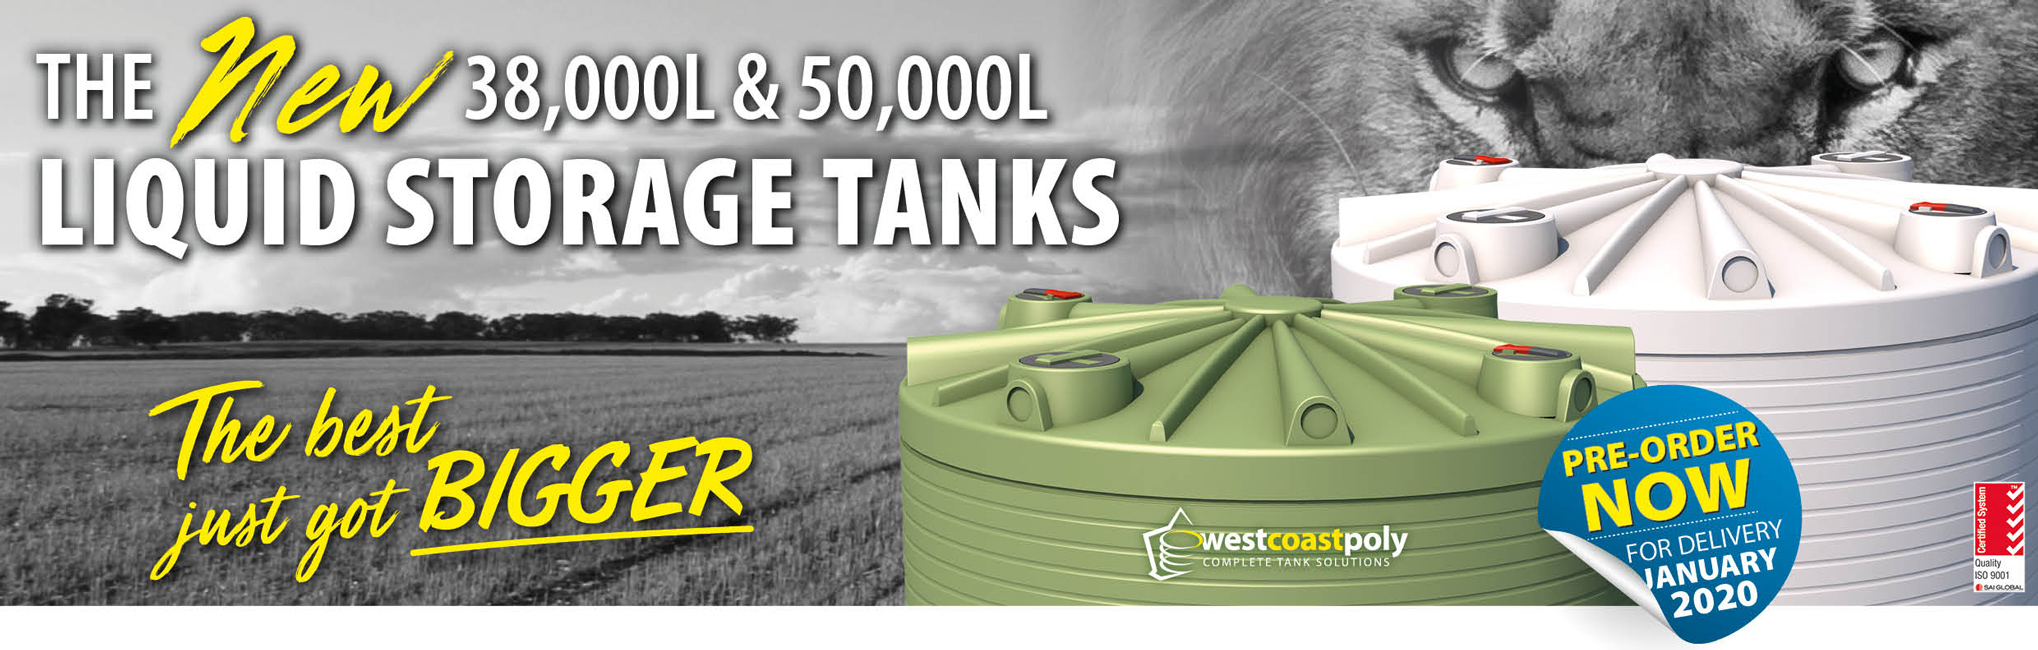 NEW 38,000L and 50,000L Liquid Storage Tanks - Water Storage - Liquid Fertiliser - Pre-order Now!